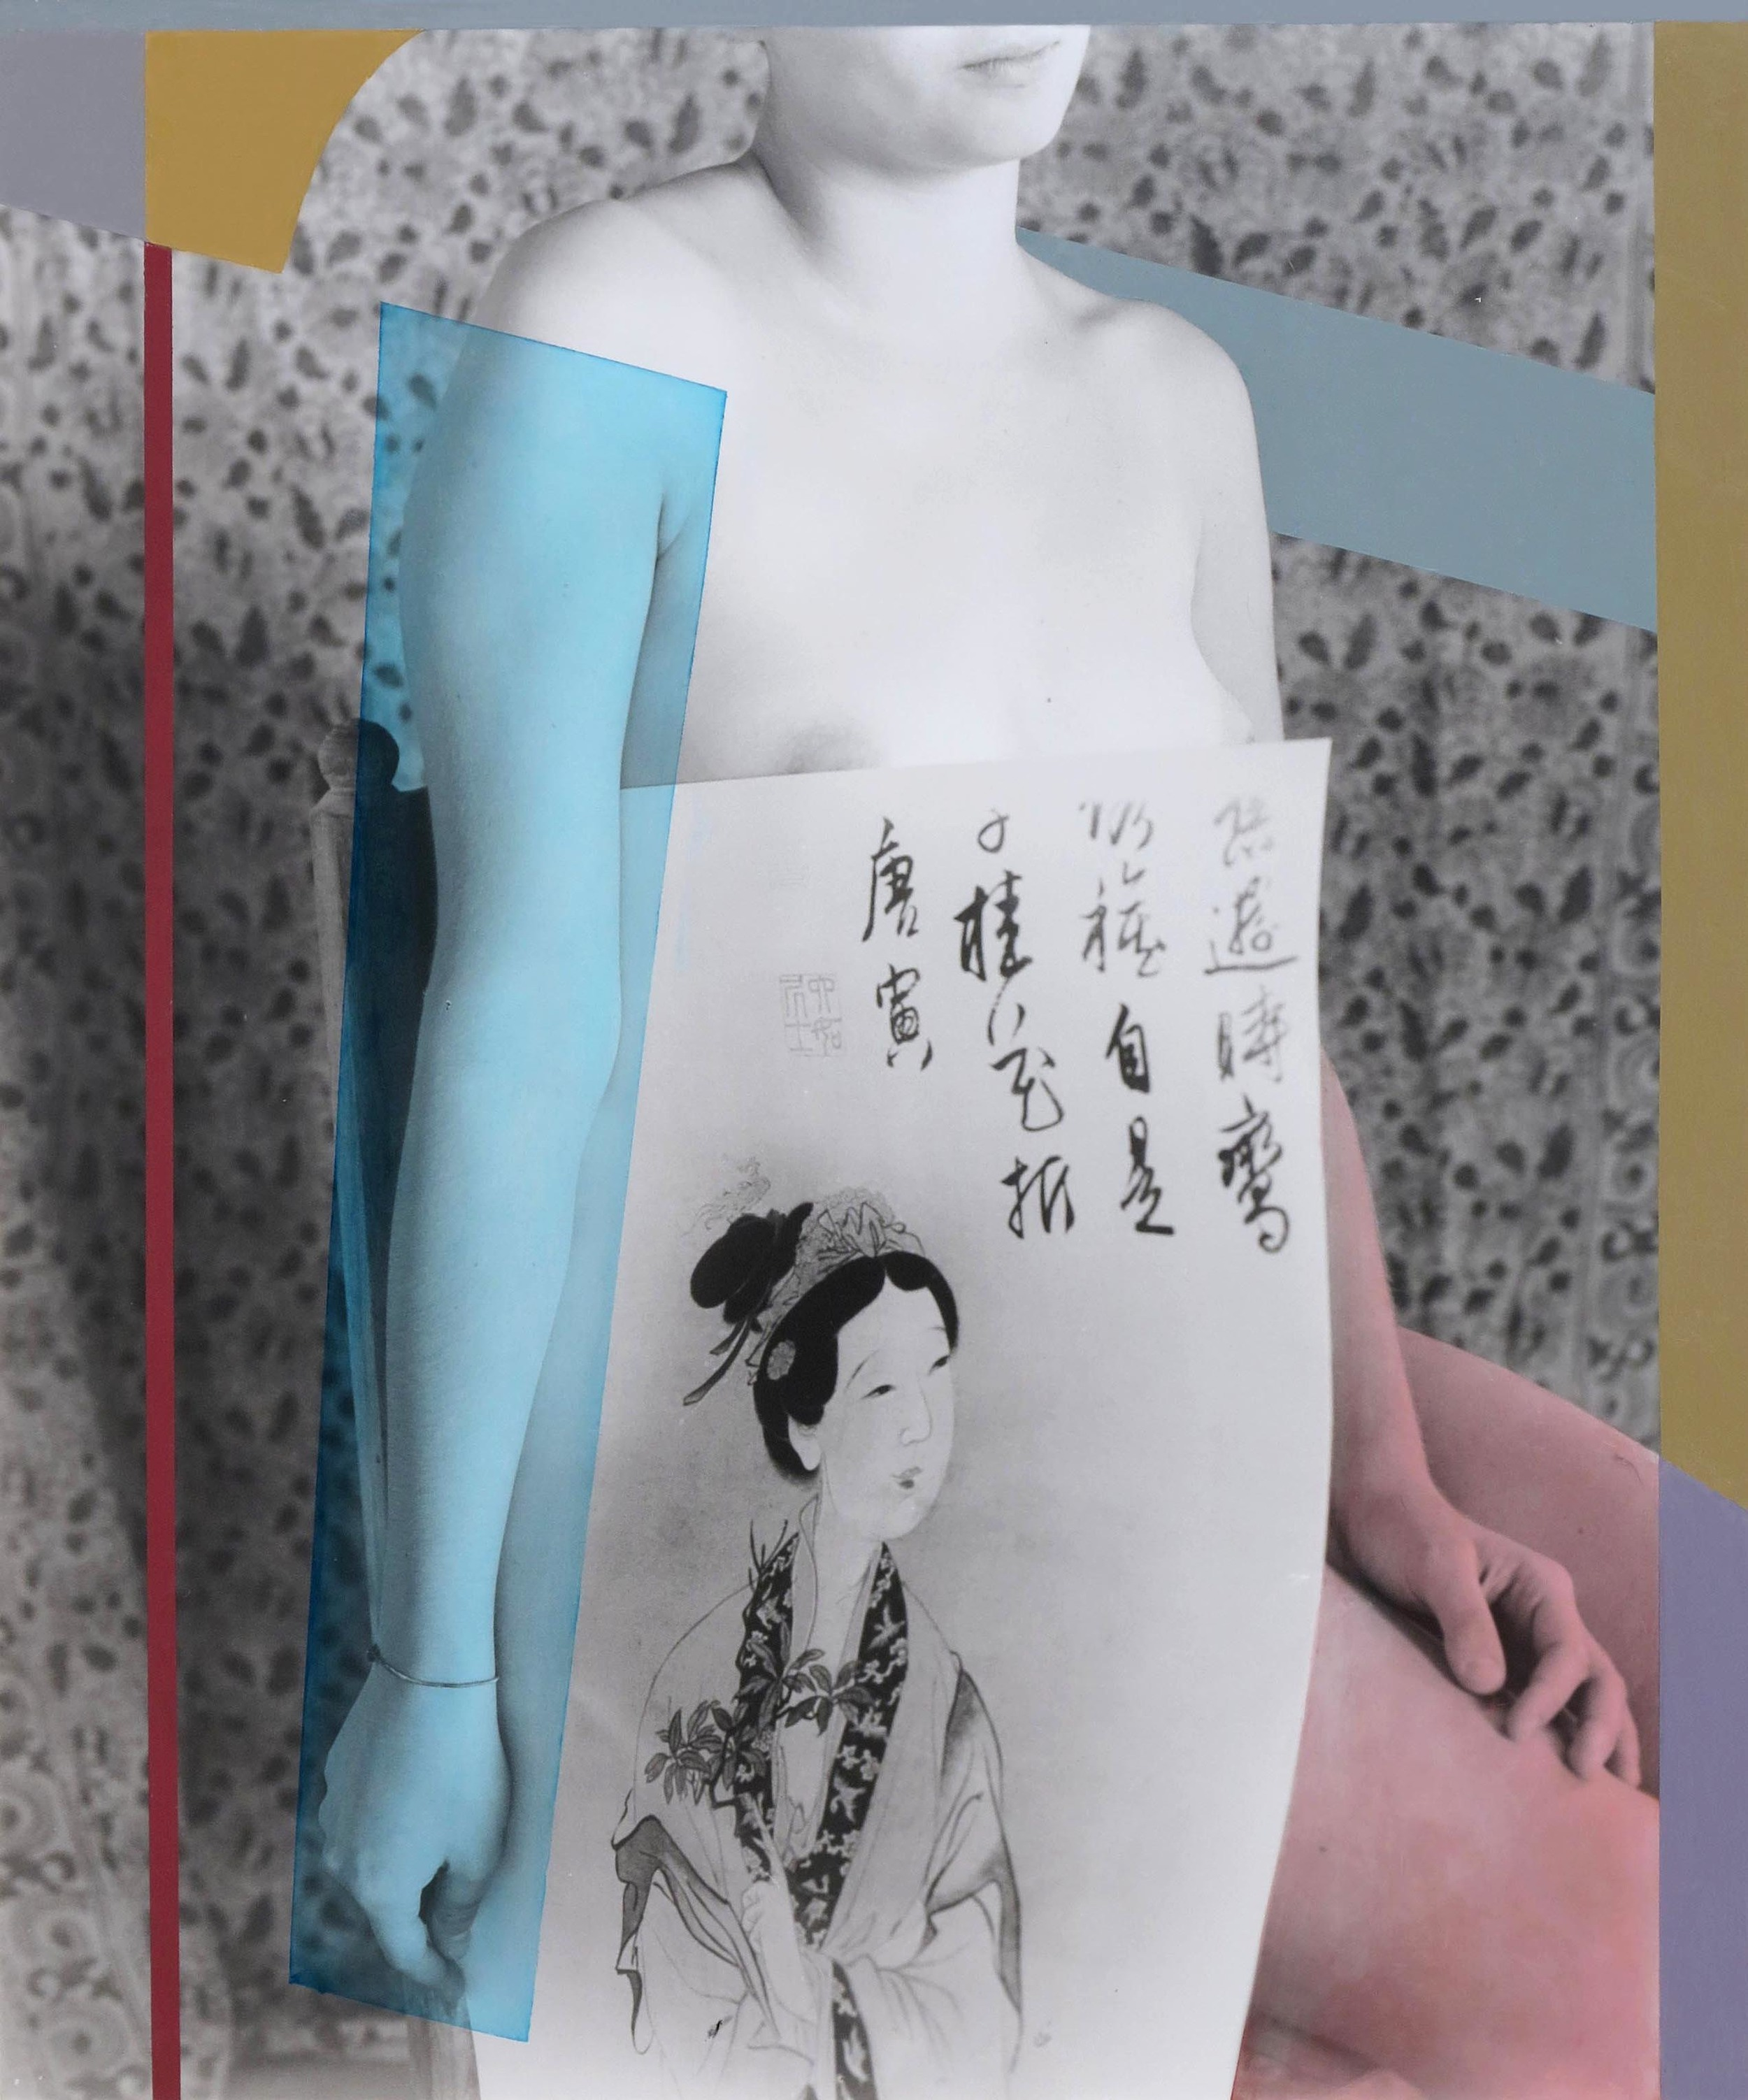 Blue Arm and Chinese Maiden  2012  oil paint on gelatin silver print  24 x 19.5 inches